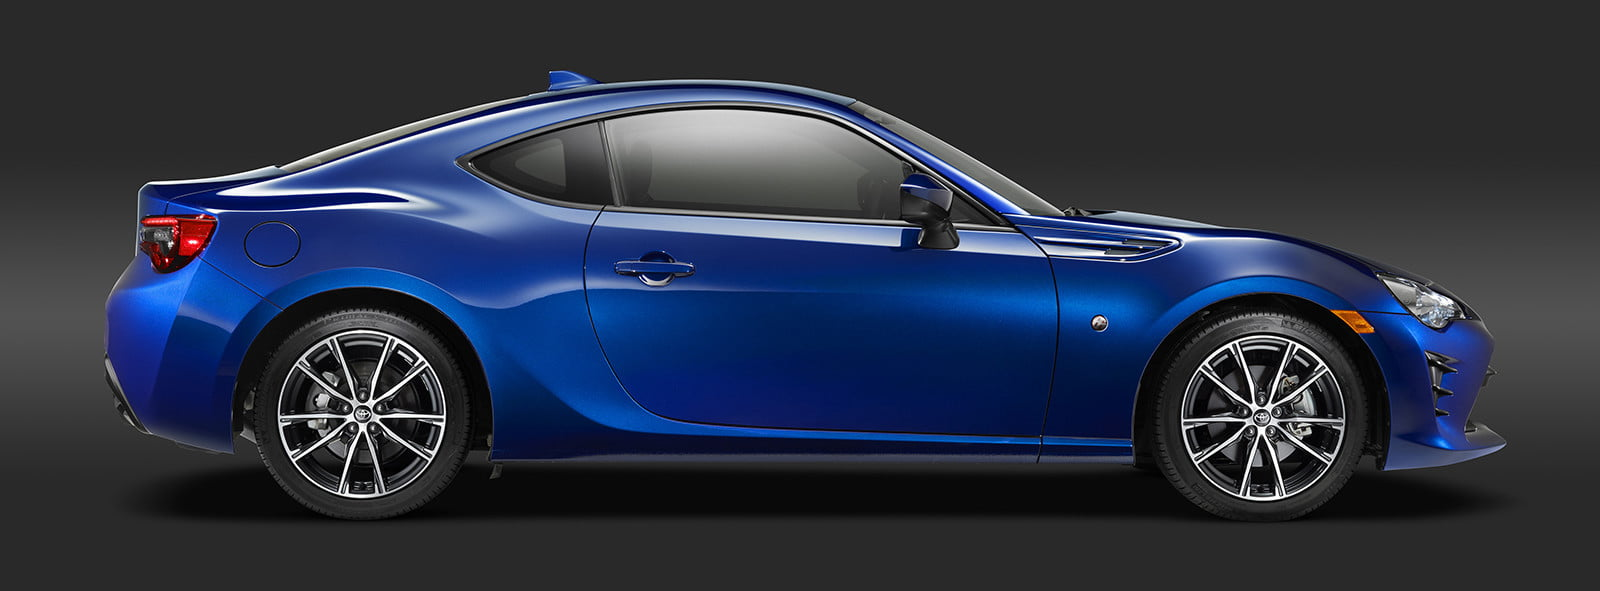 toyota and subaru reboot 86 sports coupe for second generation 2018  16